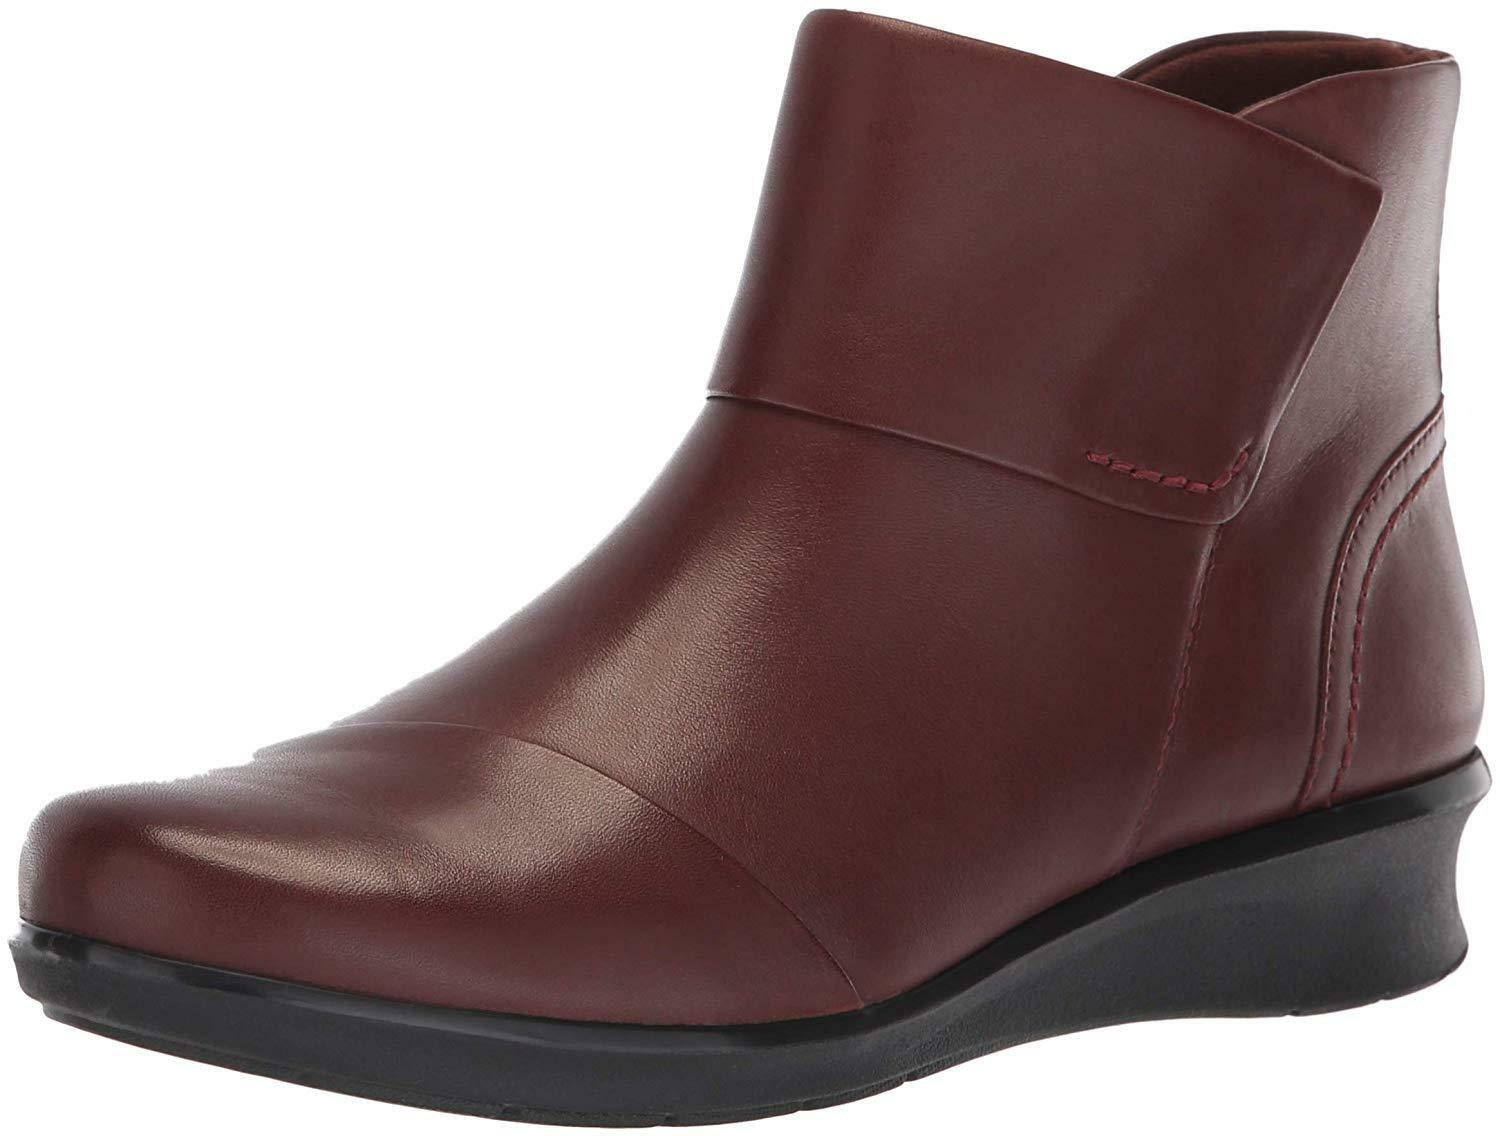 Clarks CLARKS Womens Hope Track Fashion Boot 060US- Pick SZ color.